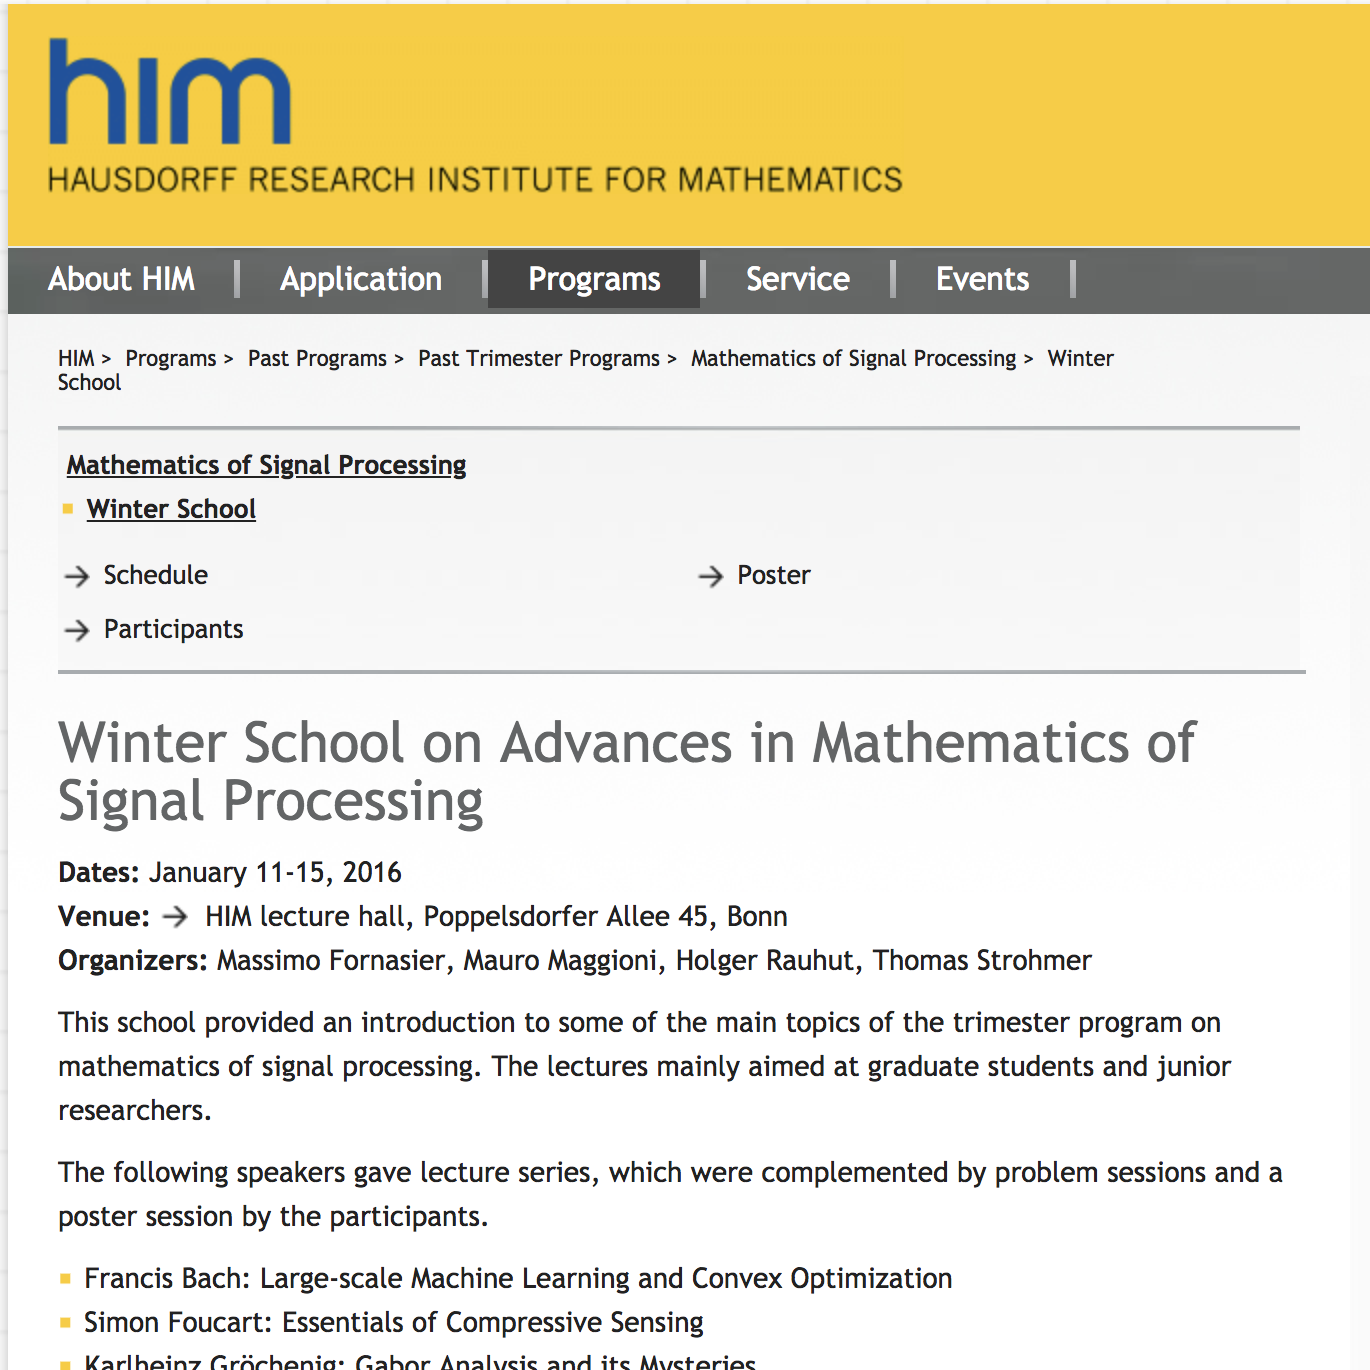 Winter School on Advances in Mathematics of Signal Processing